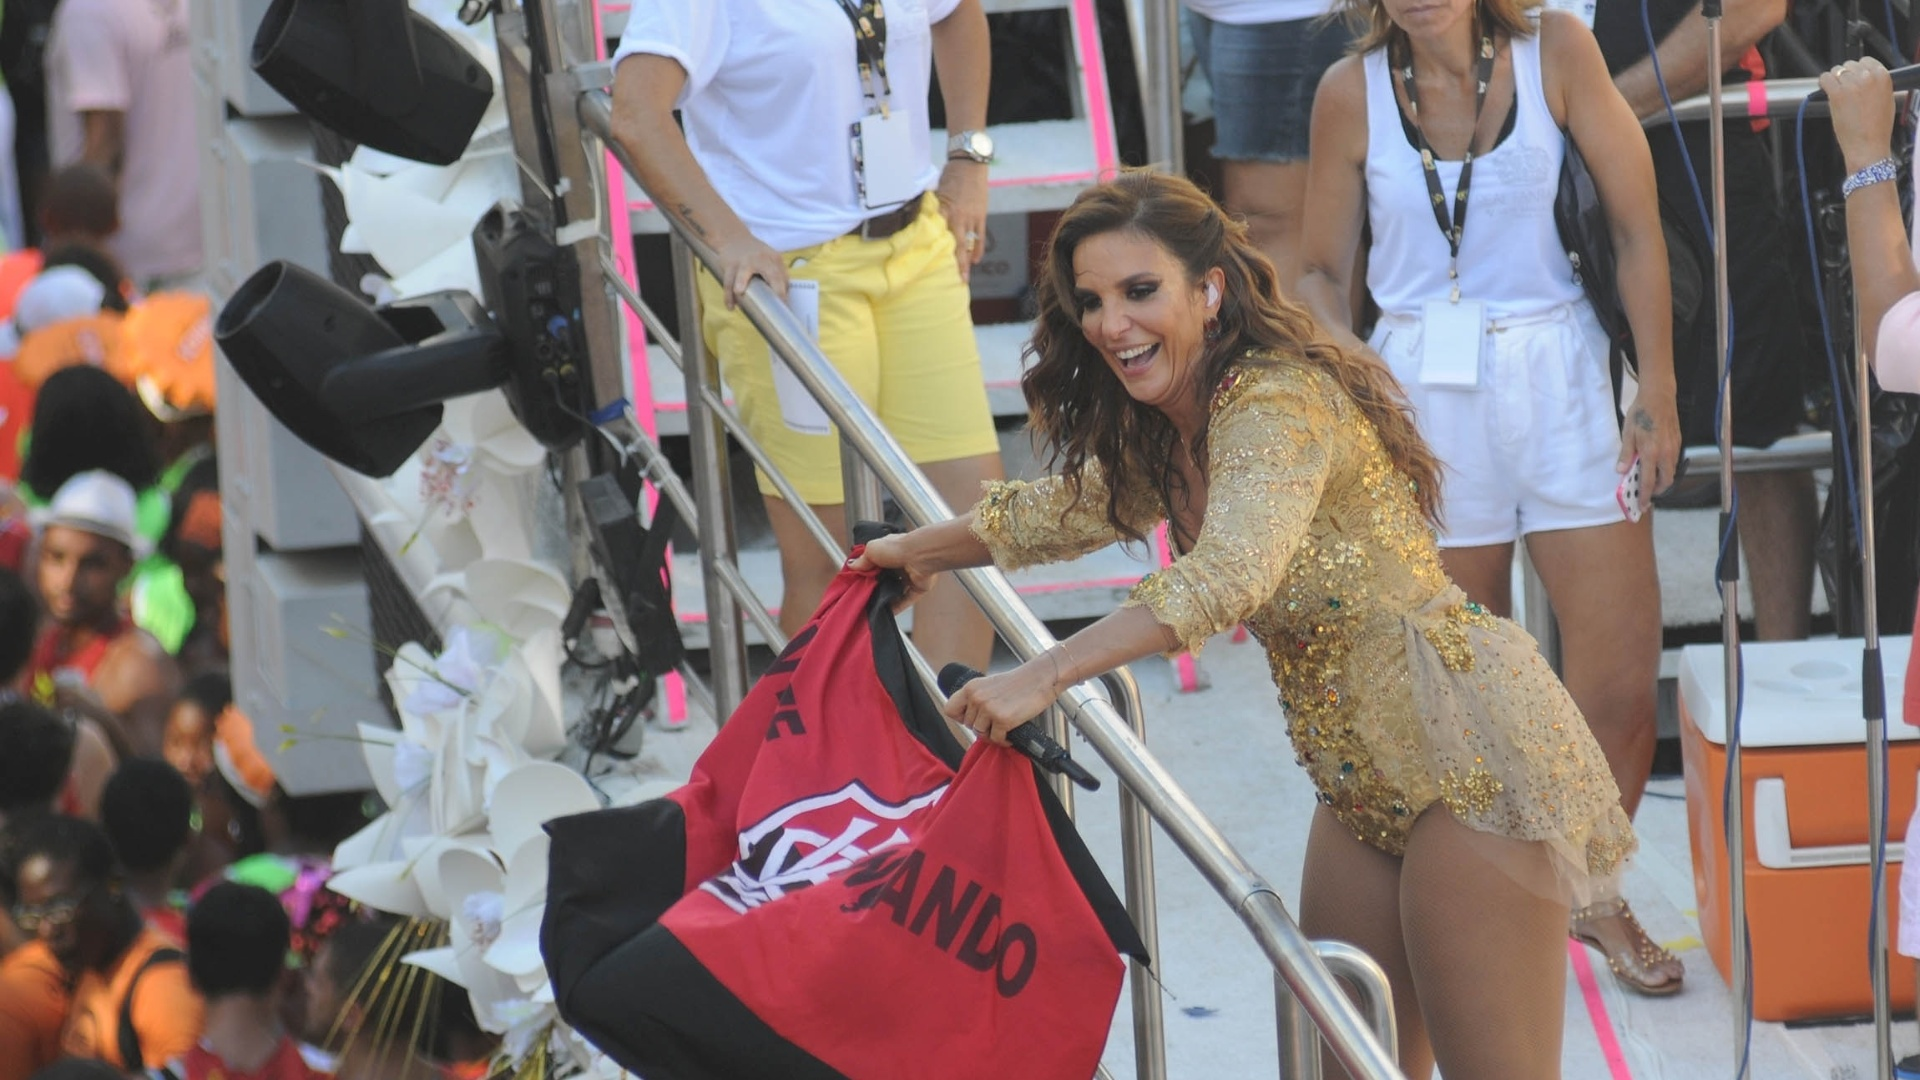 10.fev.2013 - Ivete Sangalo se apresenta no bloco Coruja no circuito Campo Grande, em Salvador